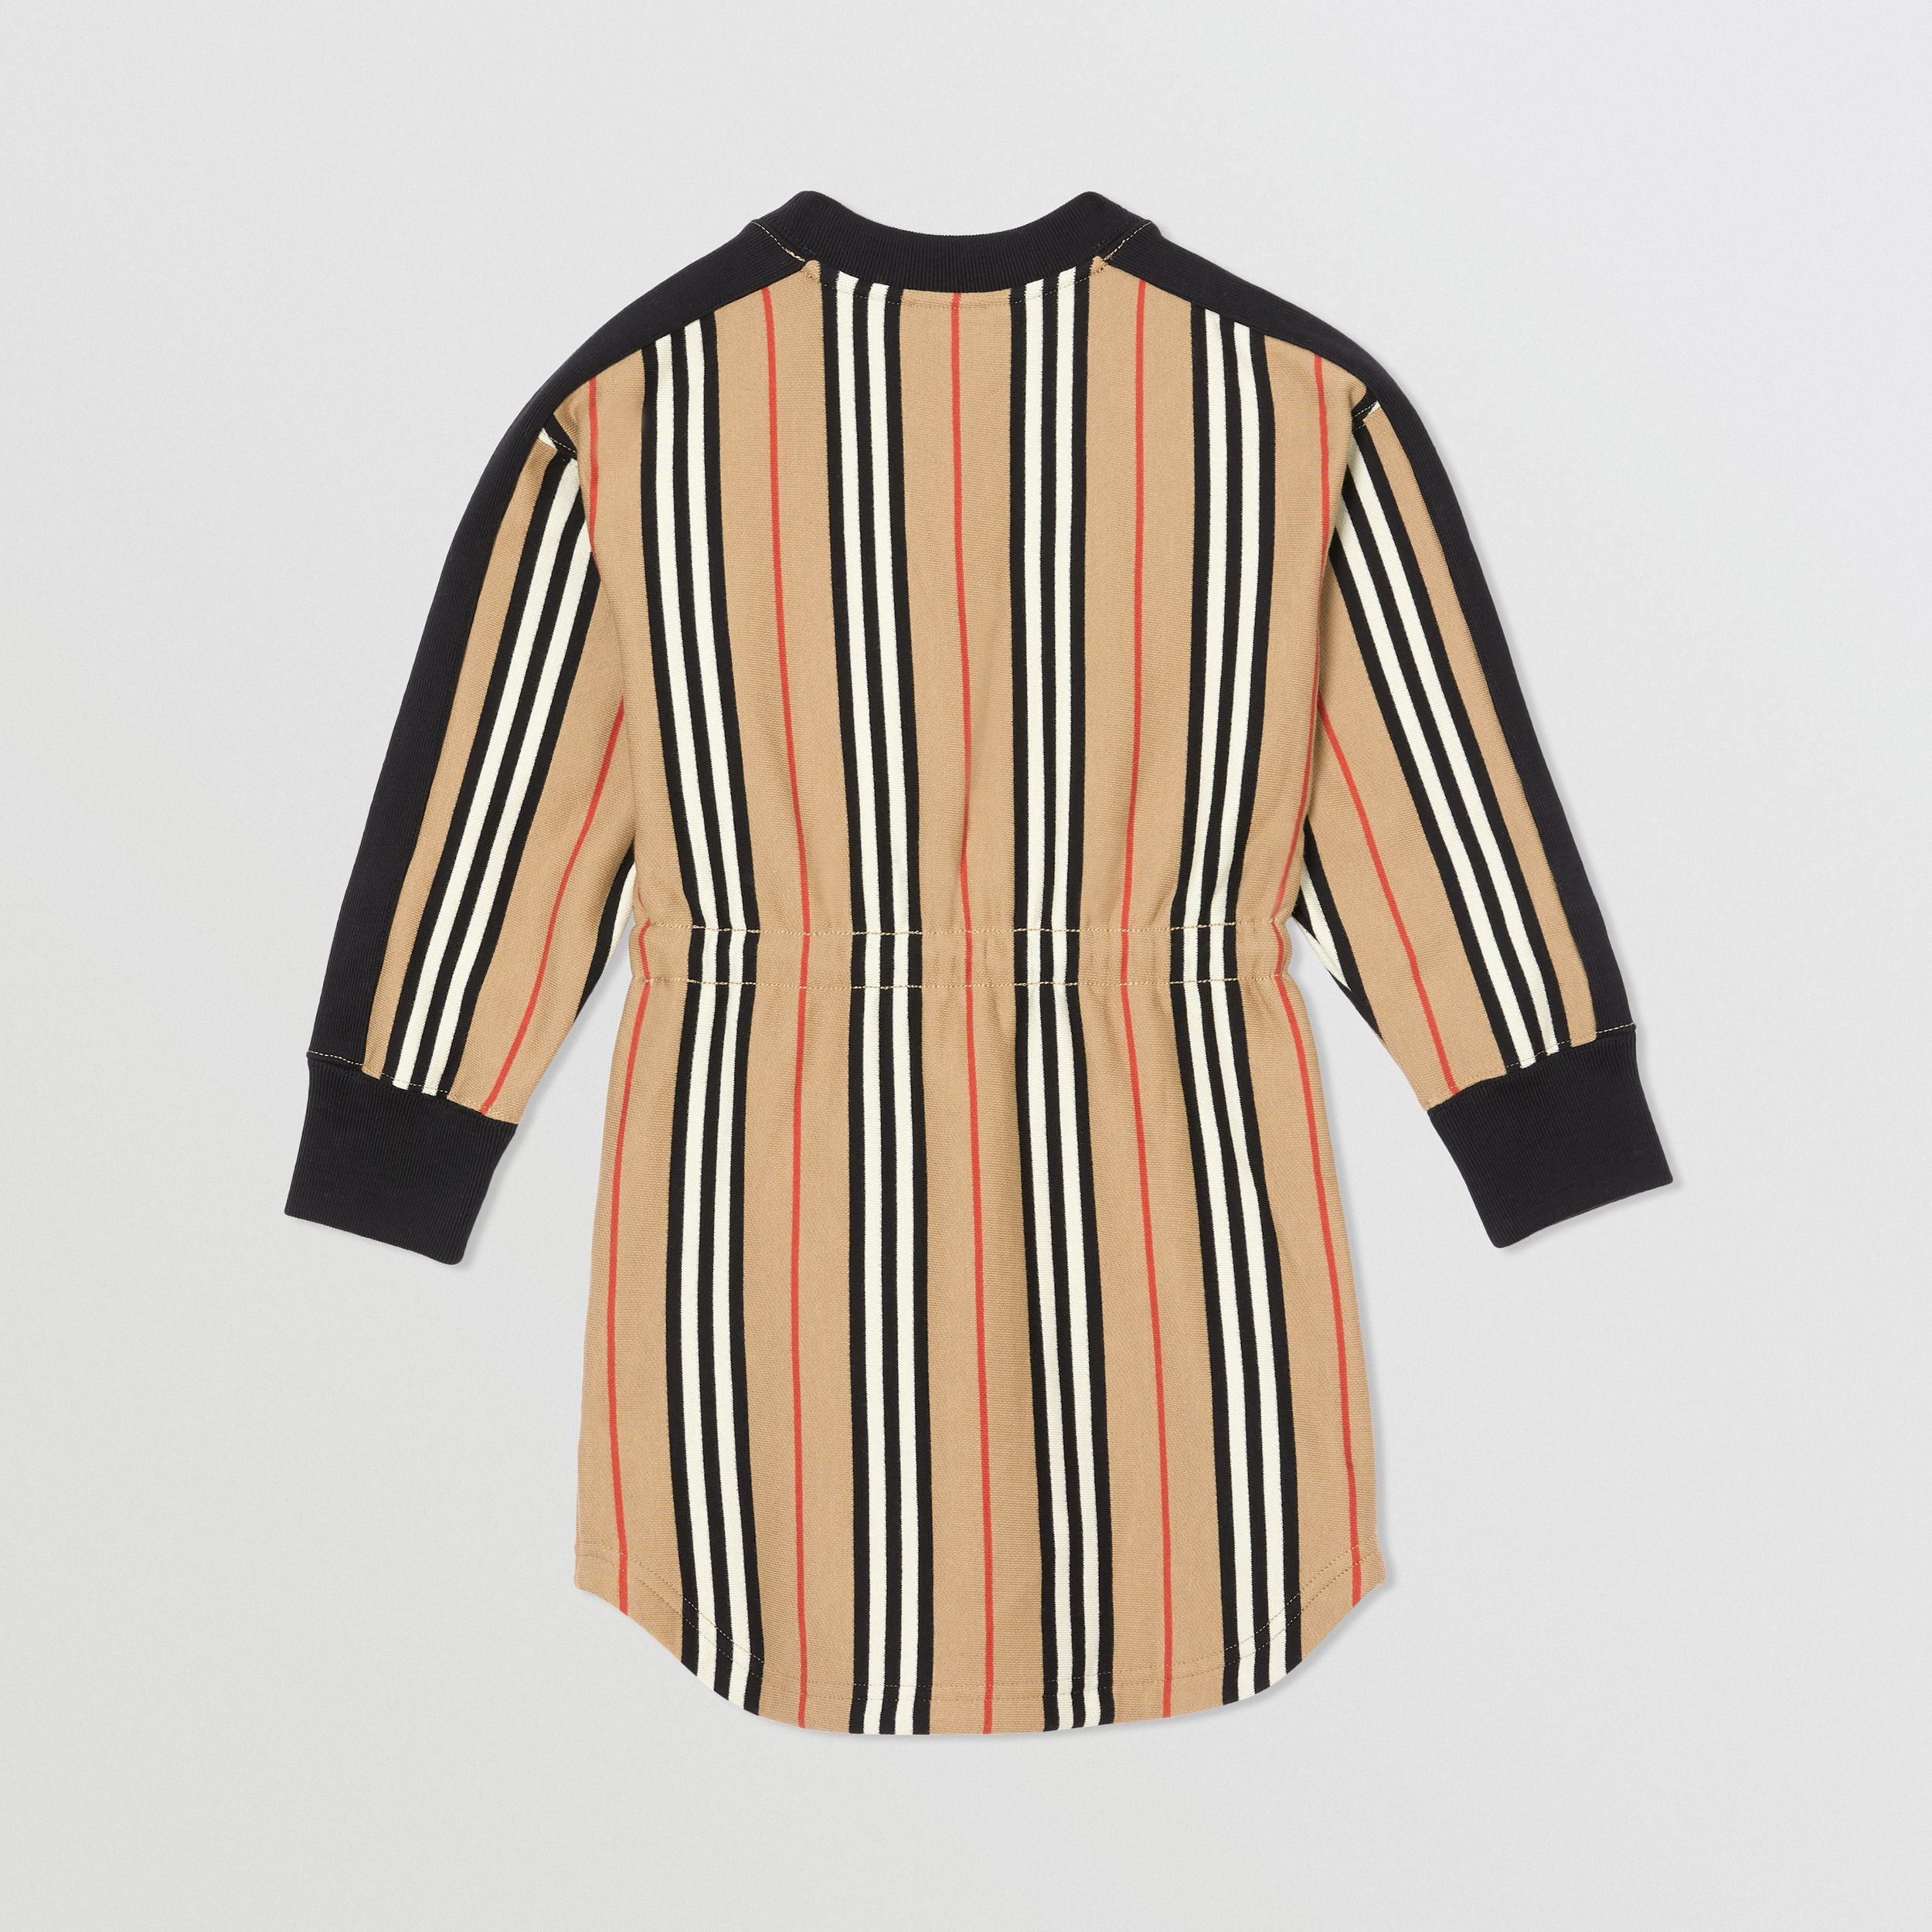 Icon Stripe Cotton Sweater Dress in Archive Beige | Burberry - 4